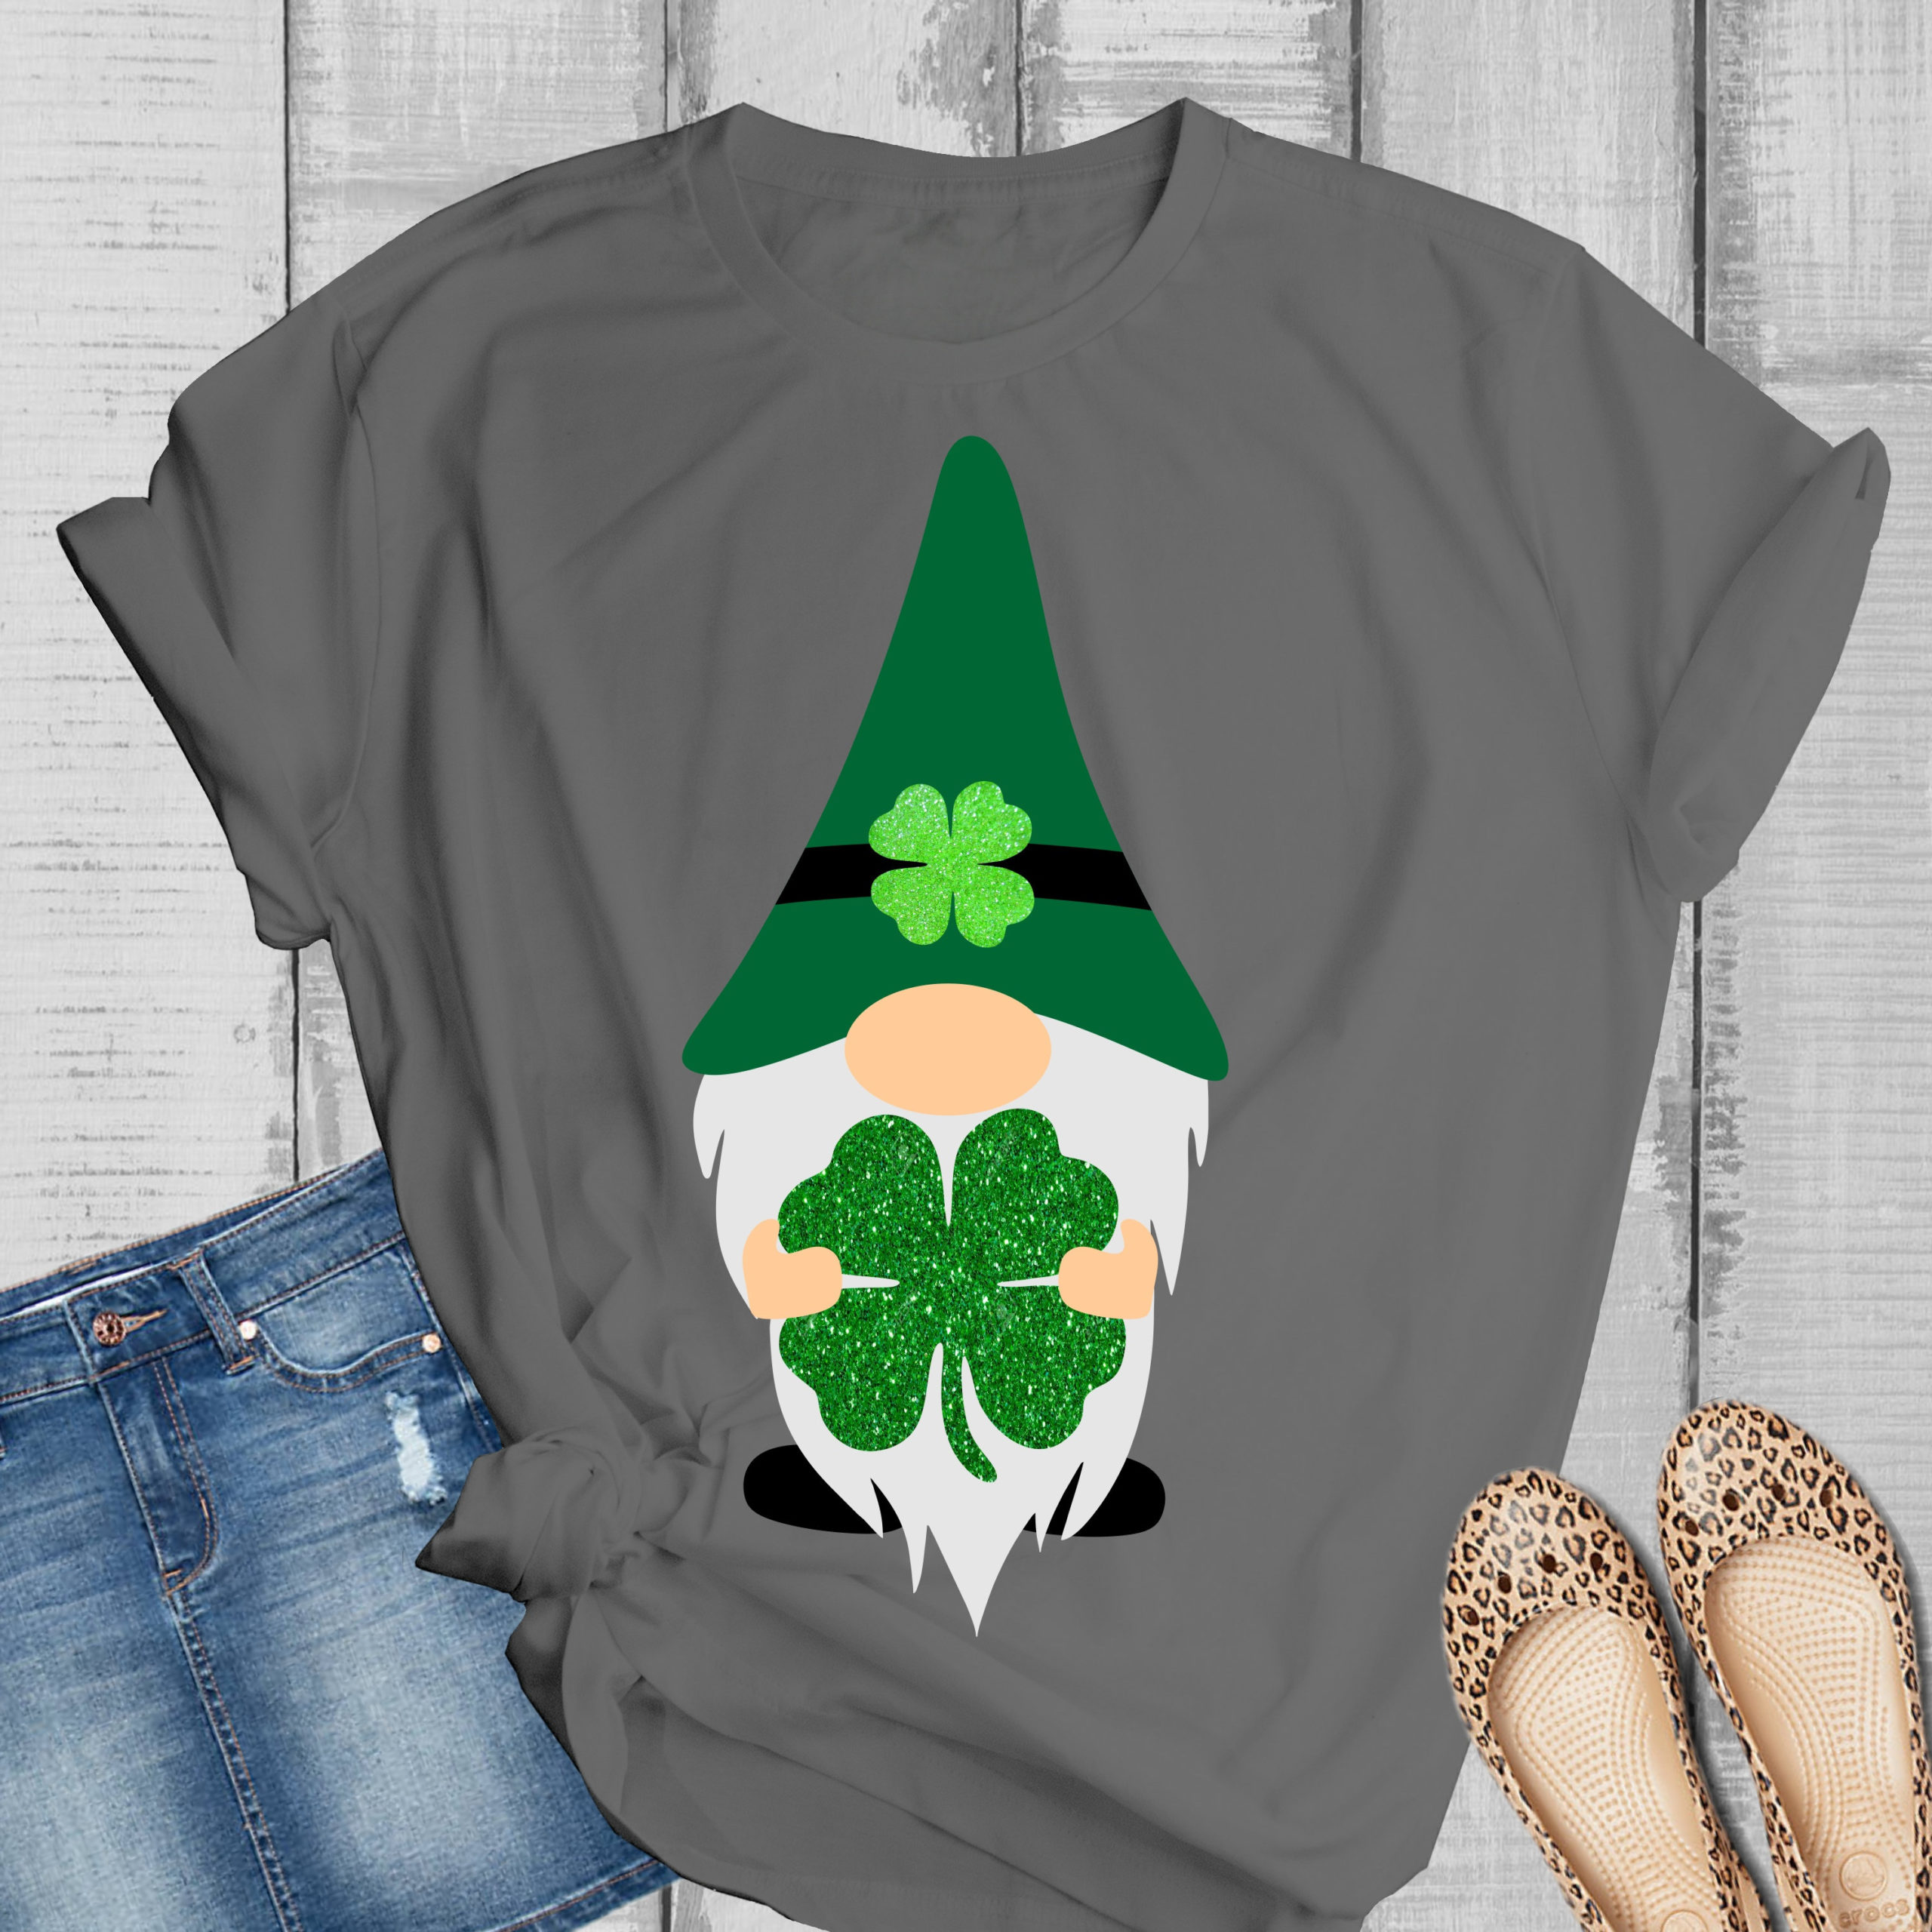 St-patricks-day-svg-st-patttys-day-gnome-svg-lucky-svgleopard-print-svgst-patricks-day-svg-designst-patricks-day-cut-file-cricut-svg-60513eb6